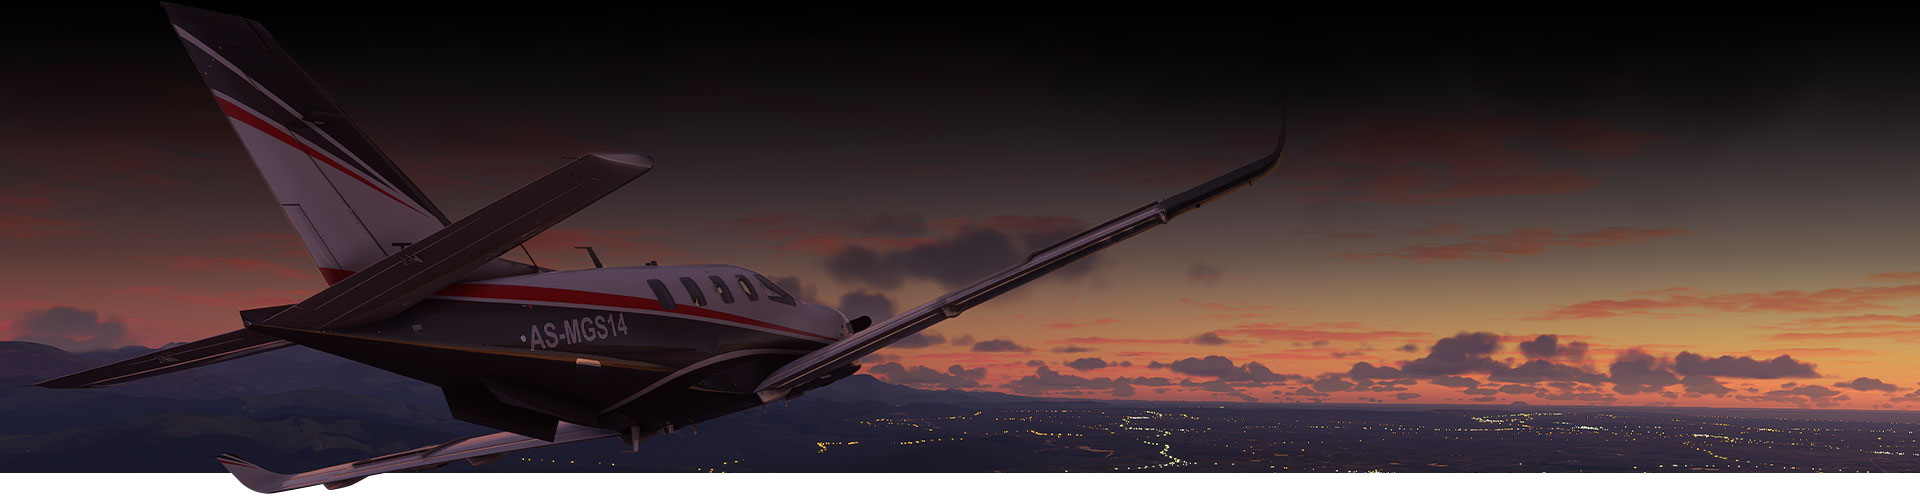 Plane from Microsoft Flight Simulator flying over a city at sunset